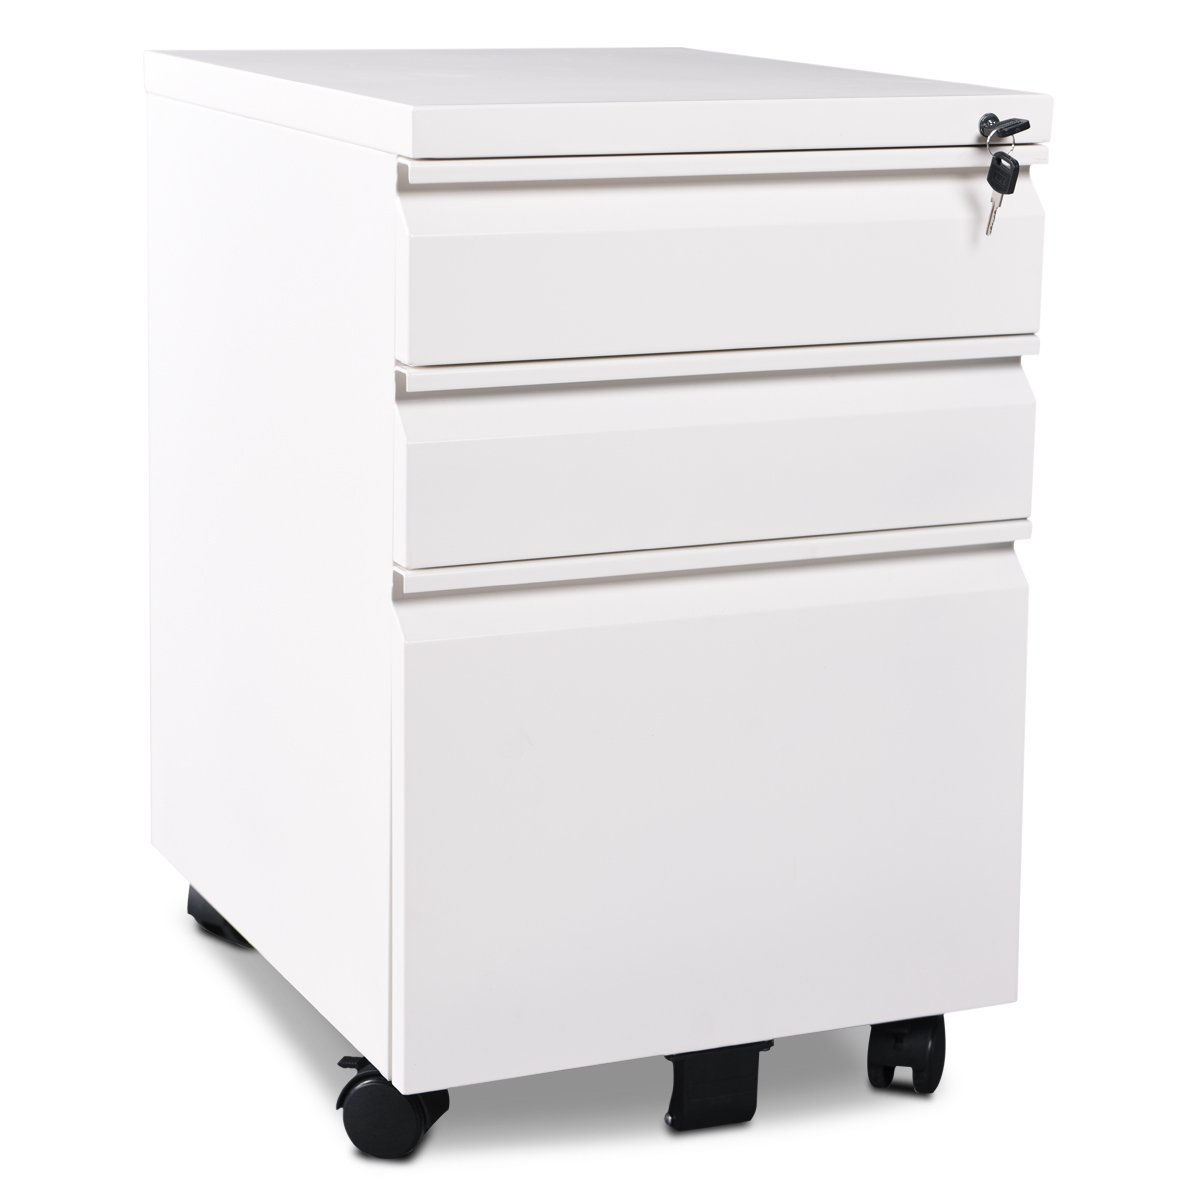 3 Drawer Metal File Cabinet with Lock by DEVAISE in White-Black(15.8 W x 19.7 D x 24.5 H) (White)